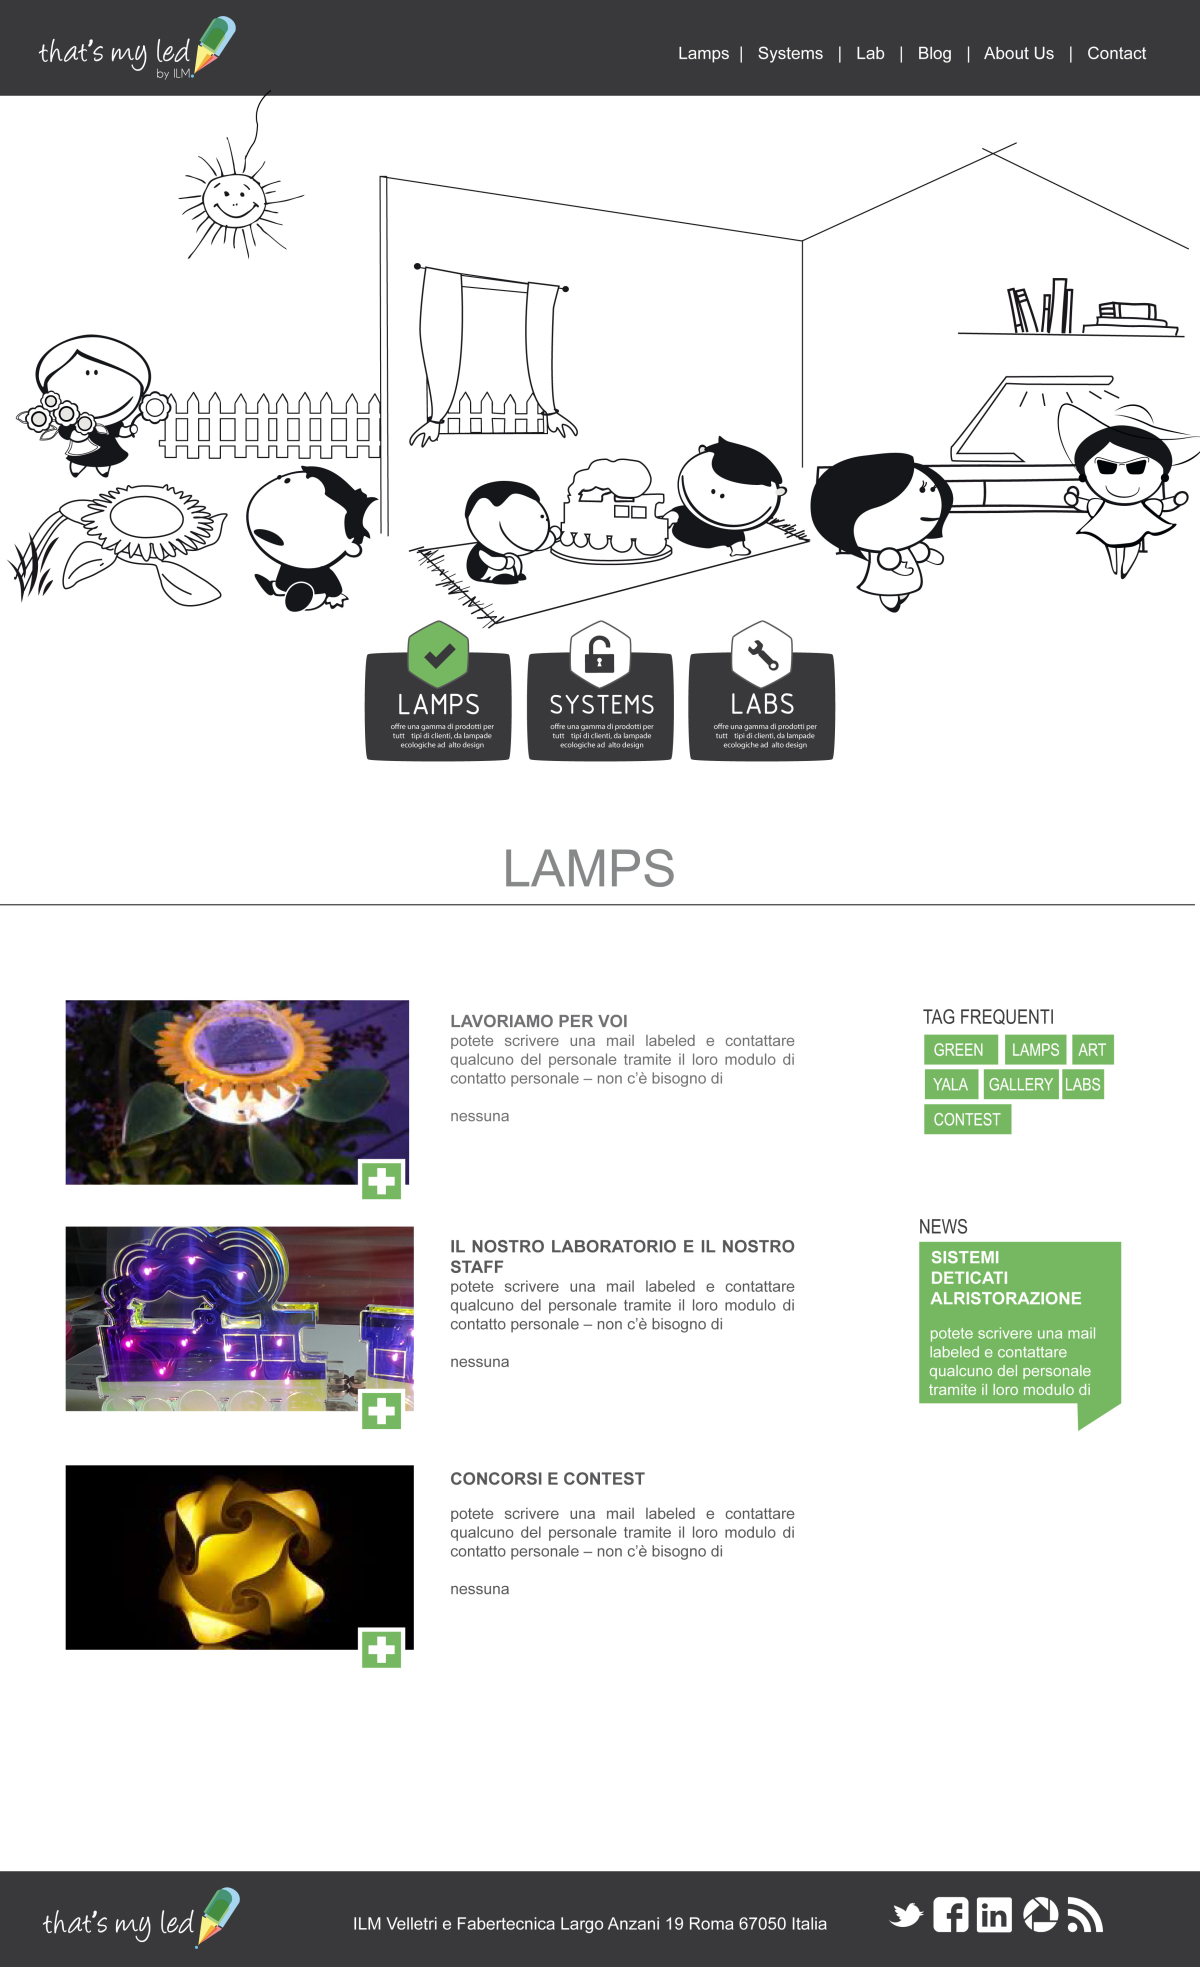 LAMPS_SYSTEM_LABS_(system)